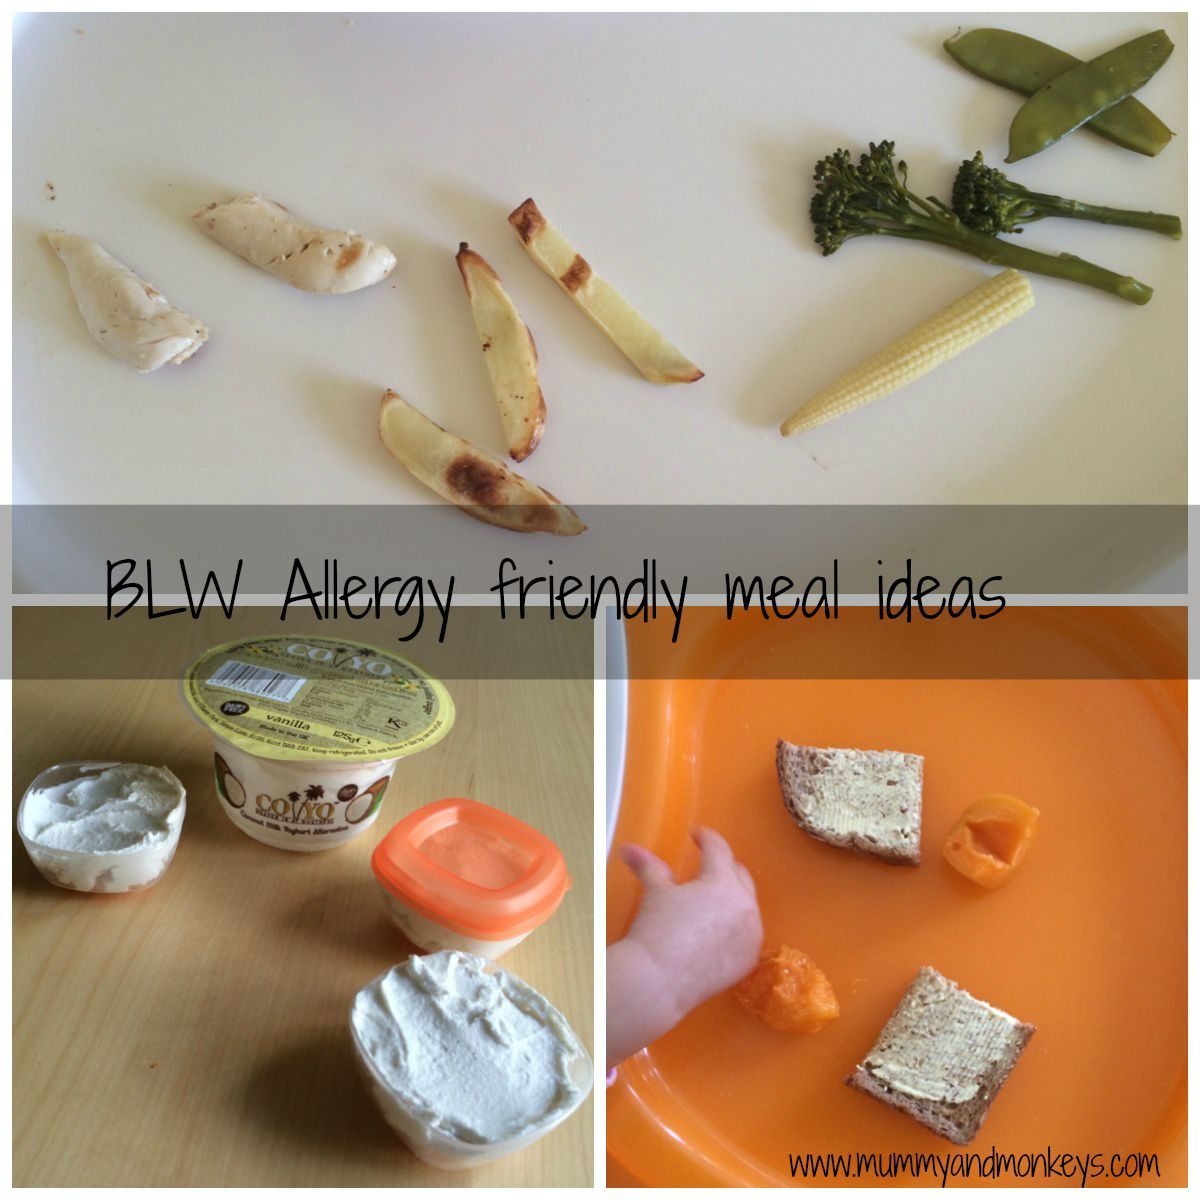 Allergy friendly blw meal ideas mummy and monkeys blw allergy friendly meal ideas forumfinder Gallery